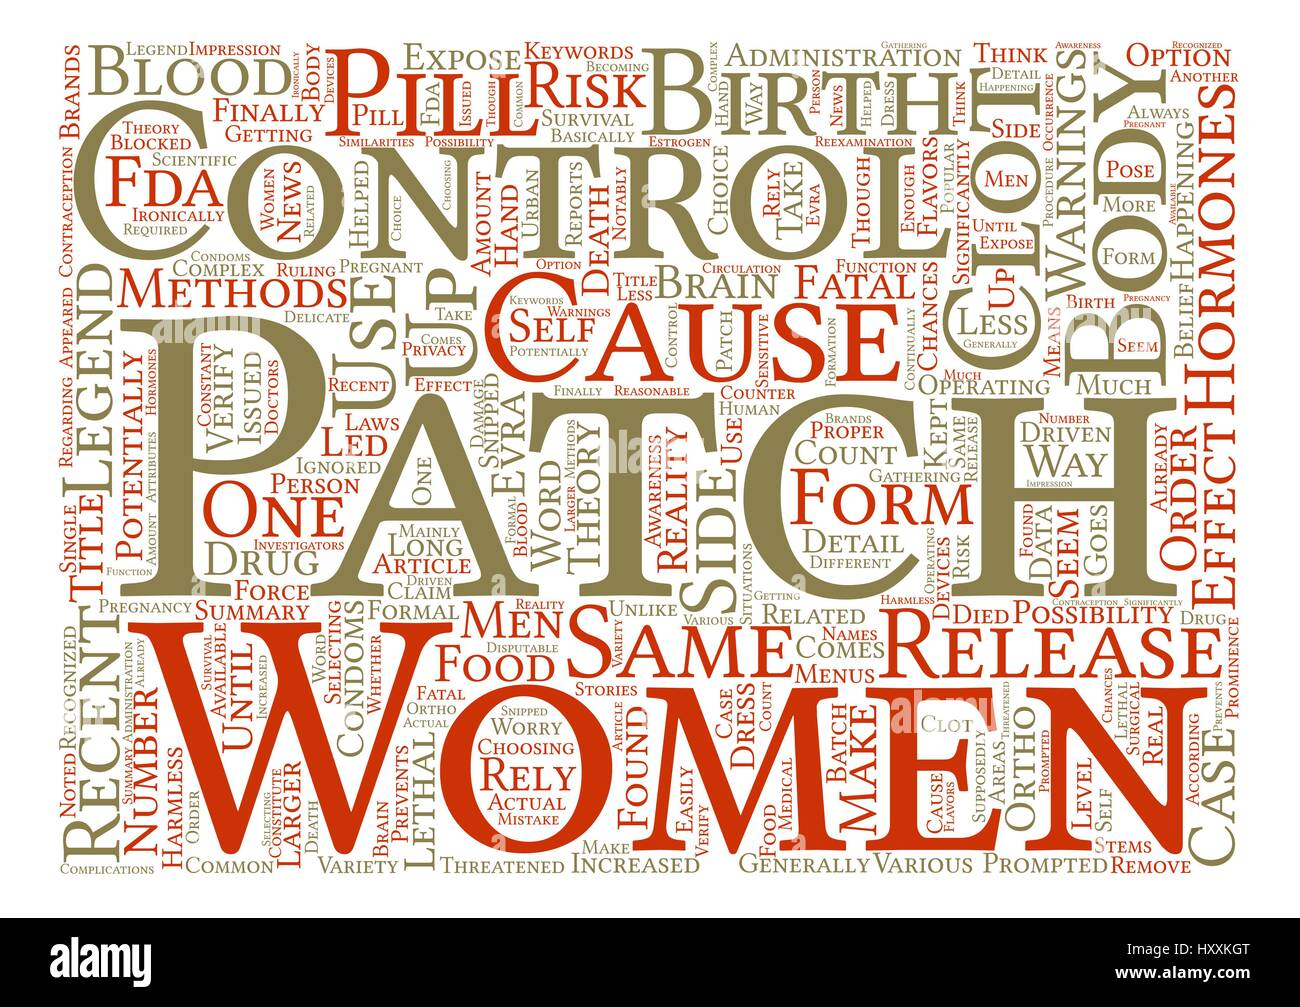 Warnings On Birth Control Patch Ordered text background word cloud concept - Stock Vector